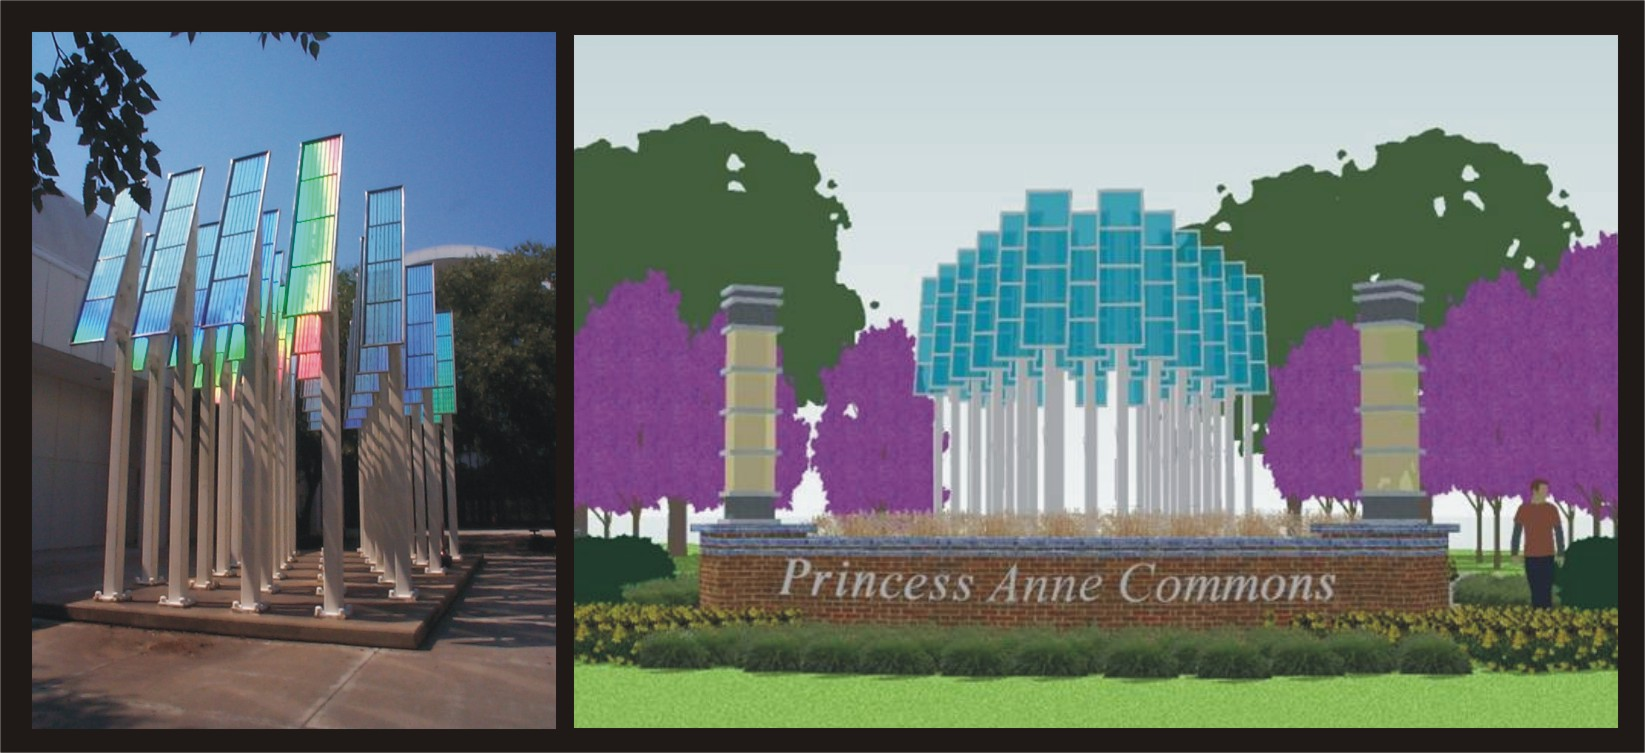 Princess Anne Commons